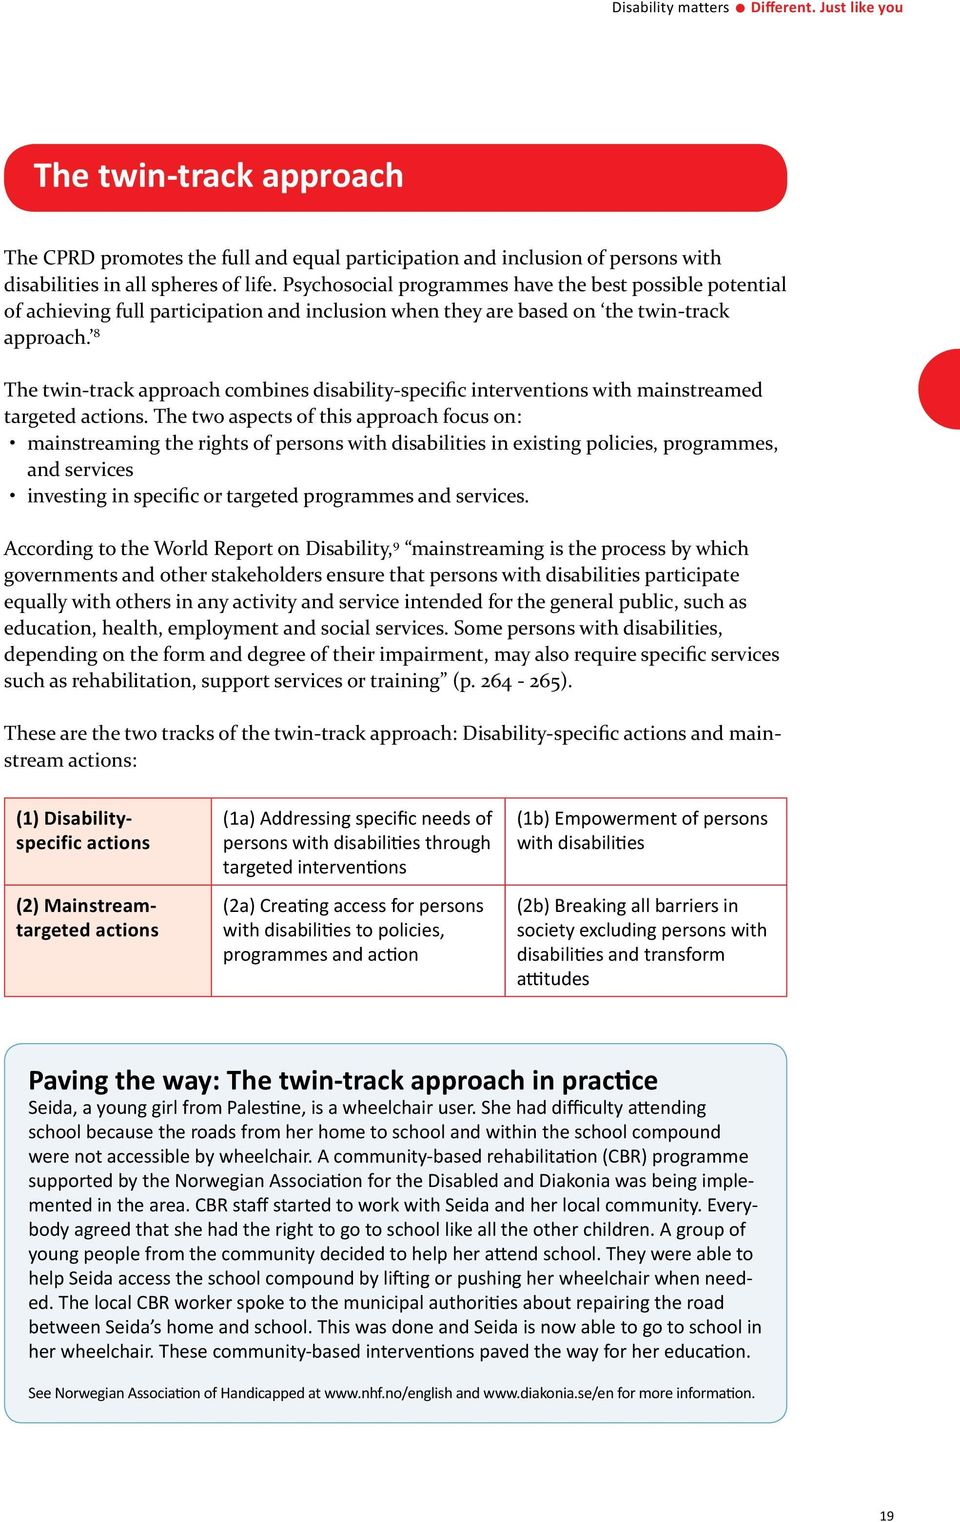 8 The twin-track approach combines disability-specific interventions with mainstreamed targeted actions.